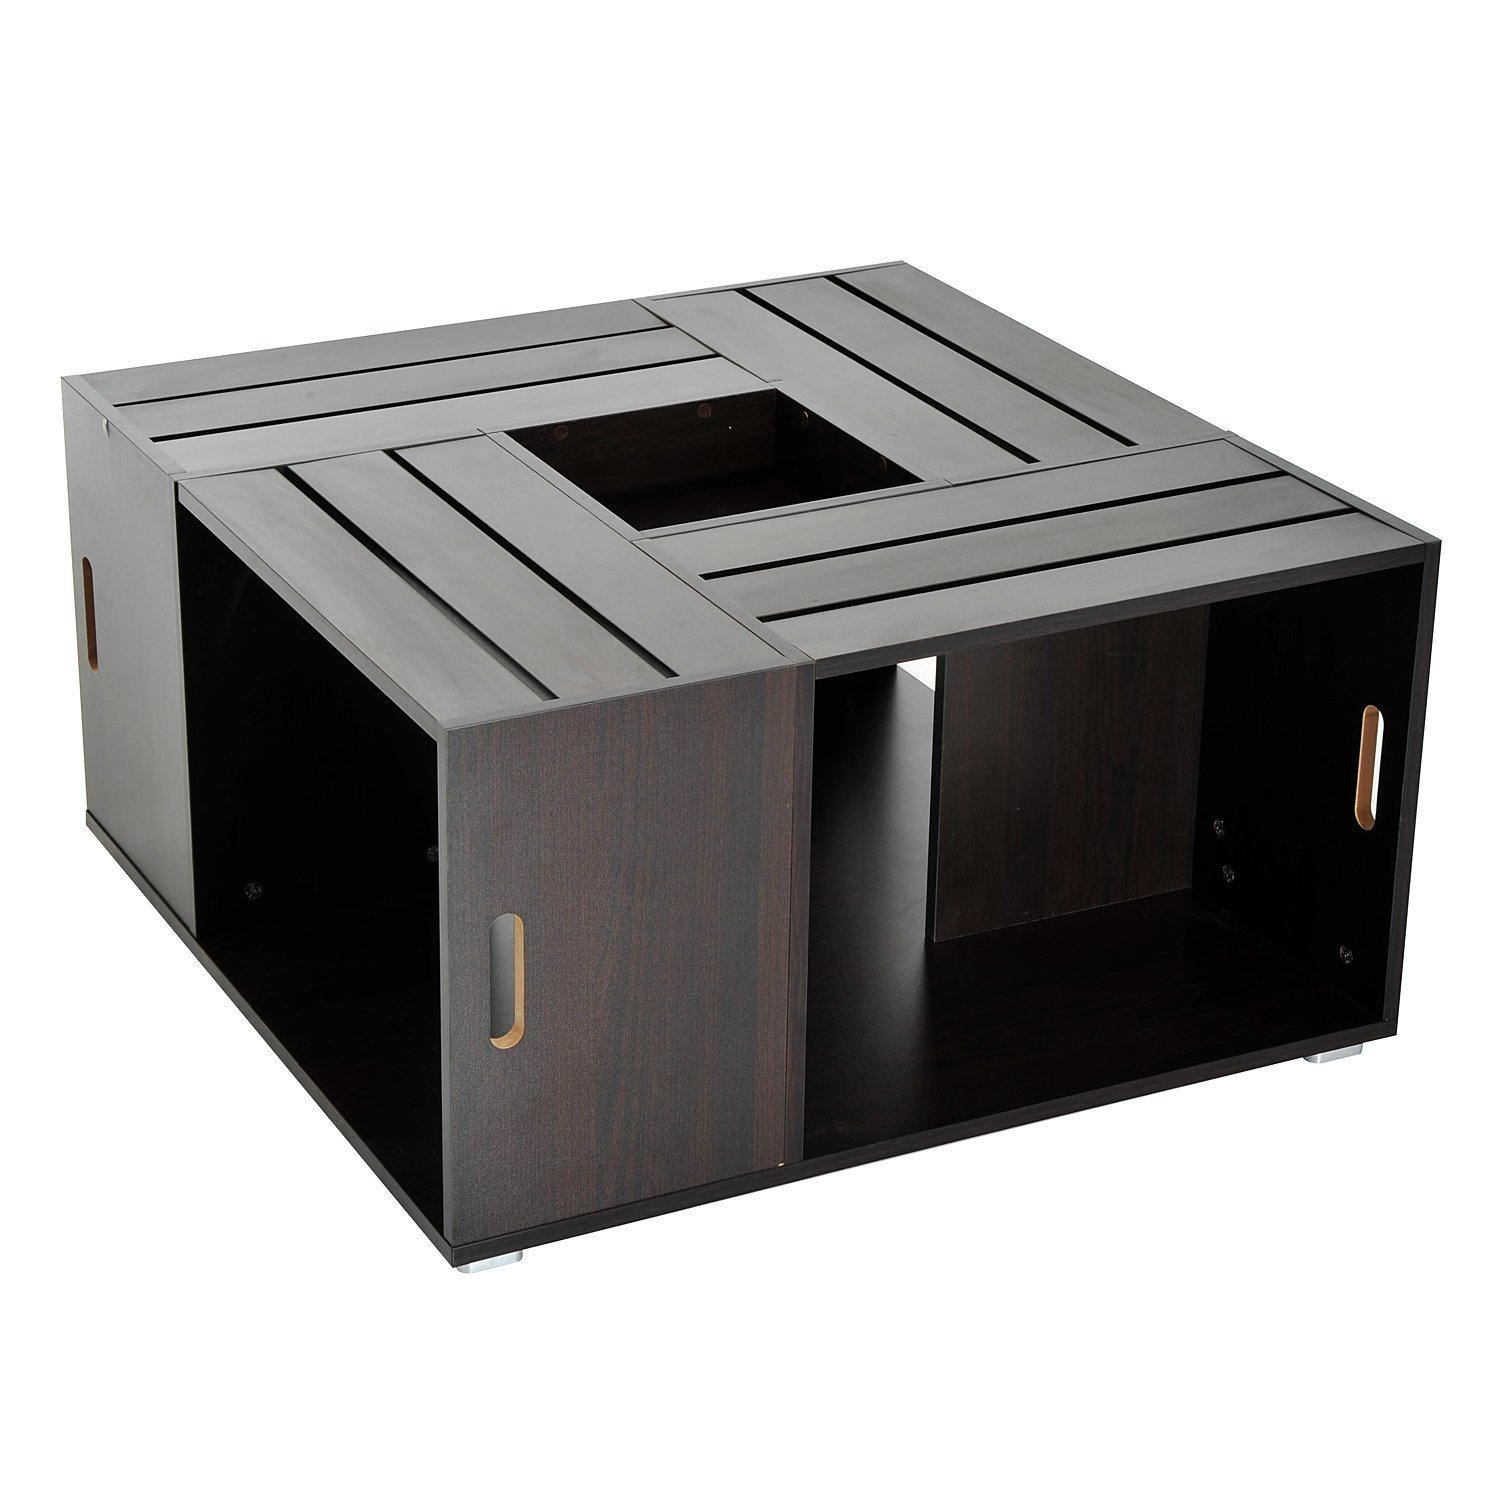 Signature Design By Ashley T628 2 Rollins Square End Table: Square Coffee Table With Storage